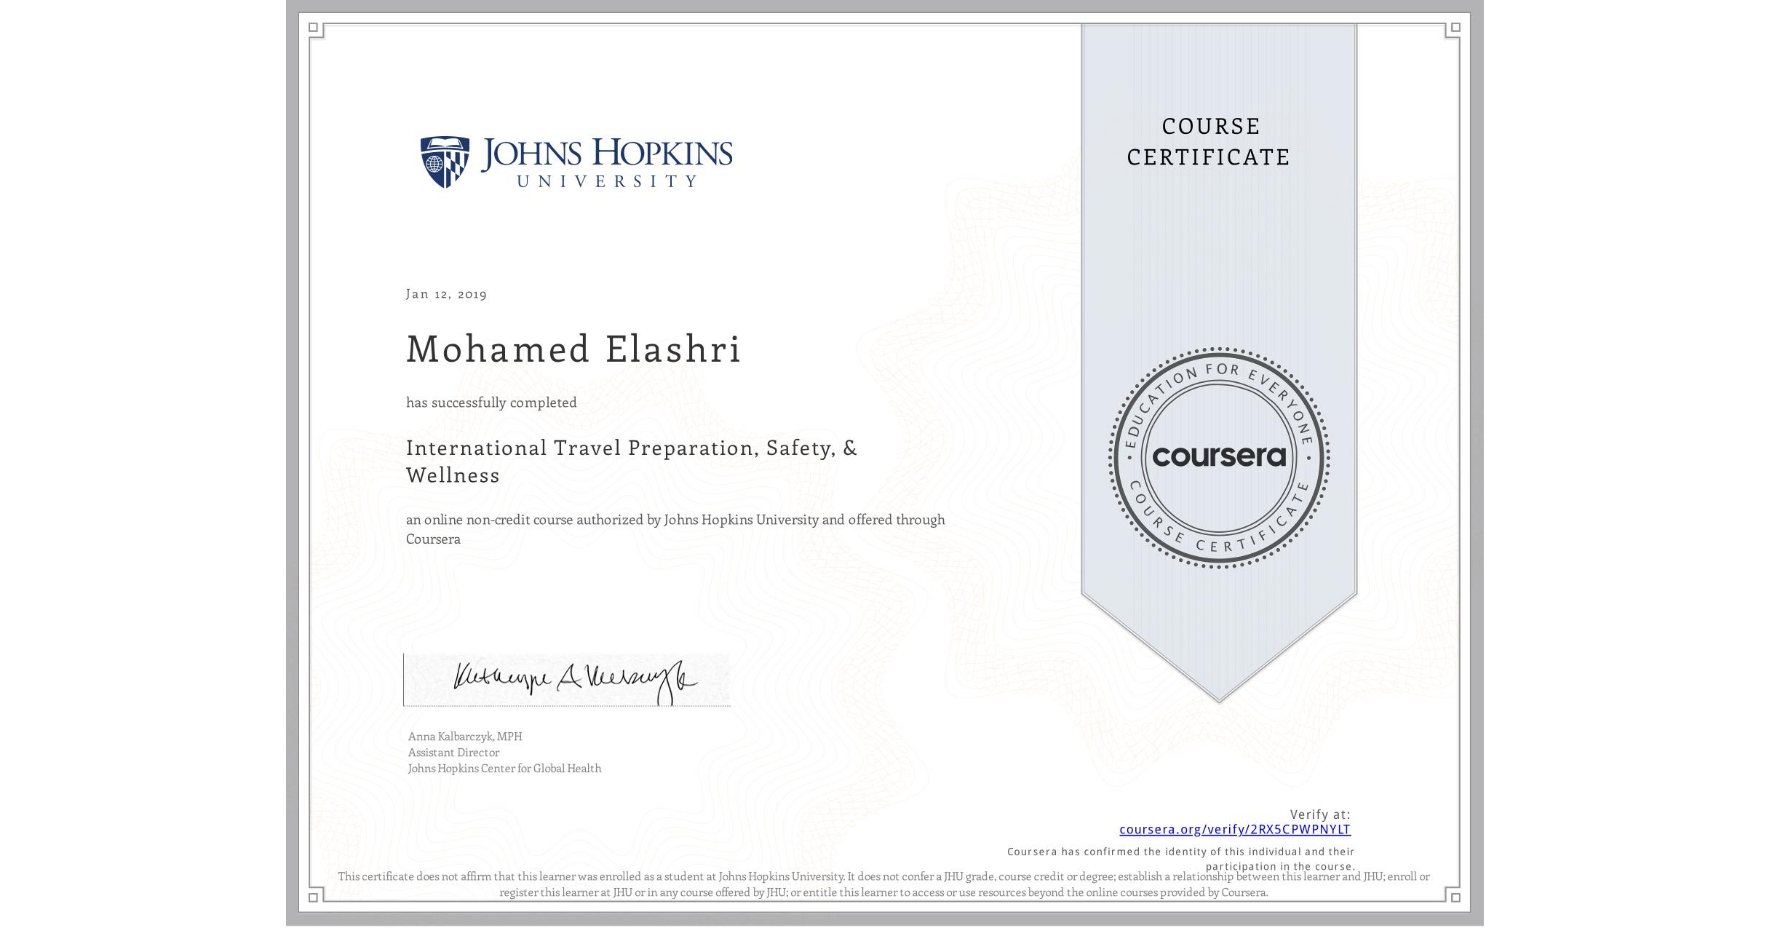 View certificate for Mohamed Elashri, International Travel Preparation, Safety, & Wellness, an online non-credit course authorized by Johns Hopkins University and offered through Coursera